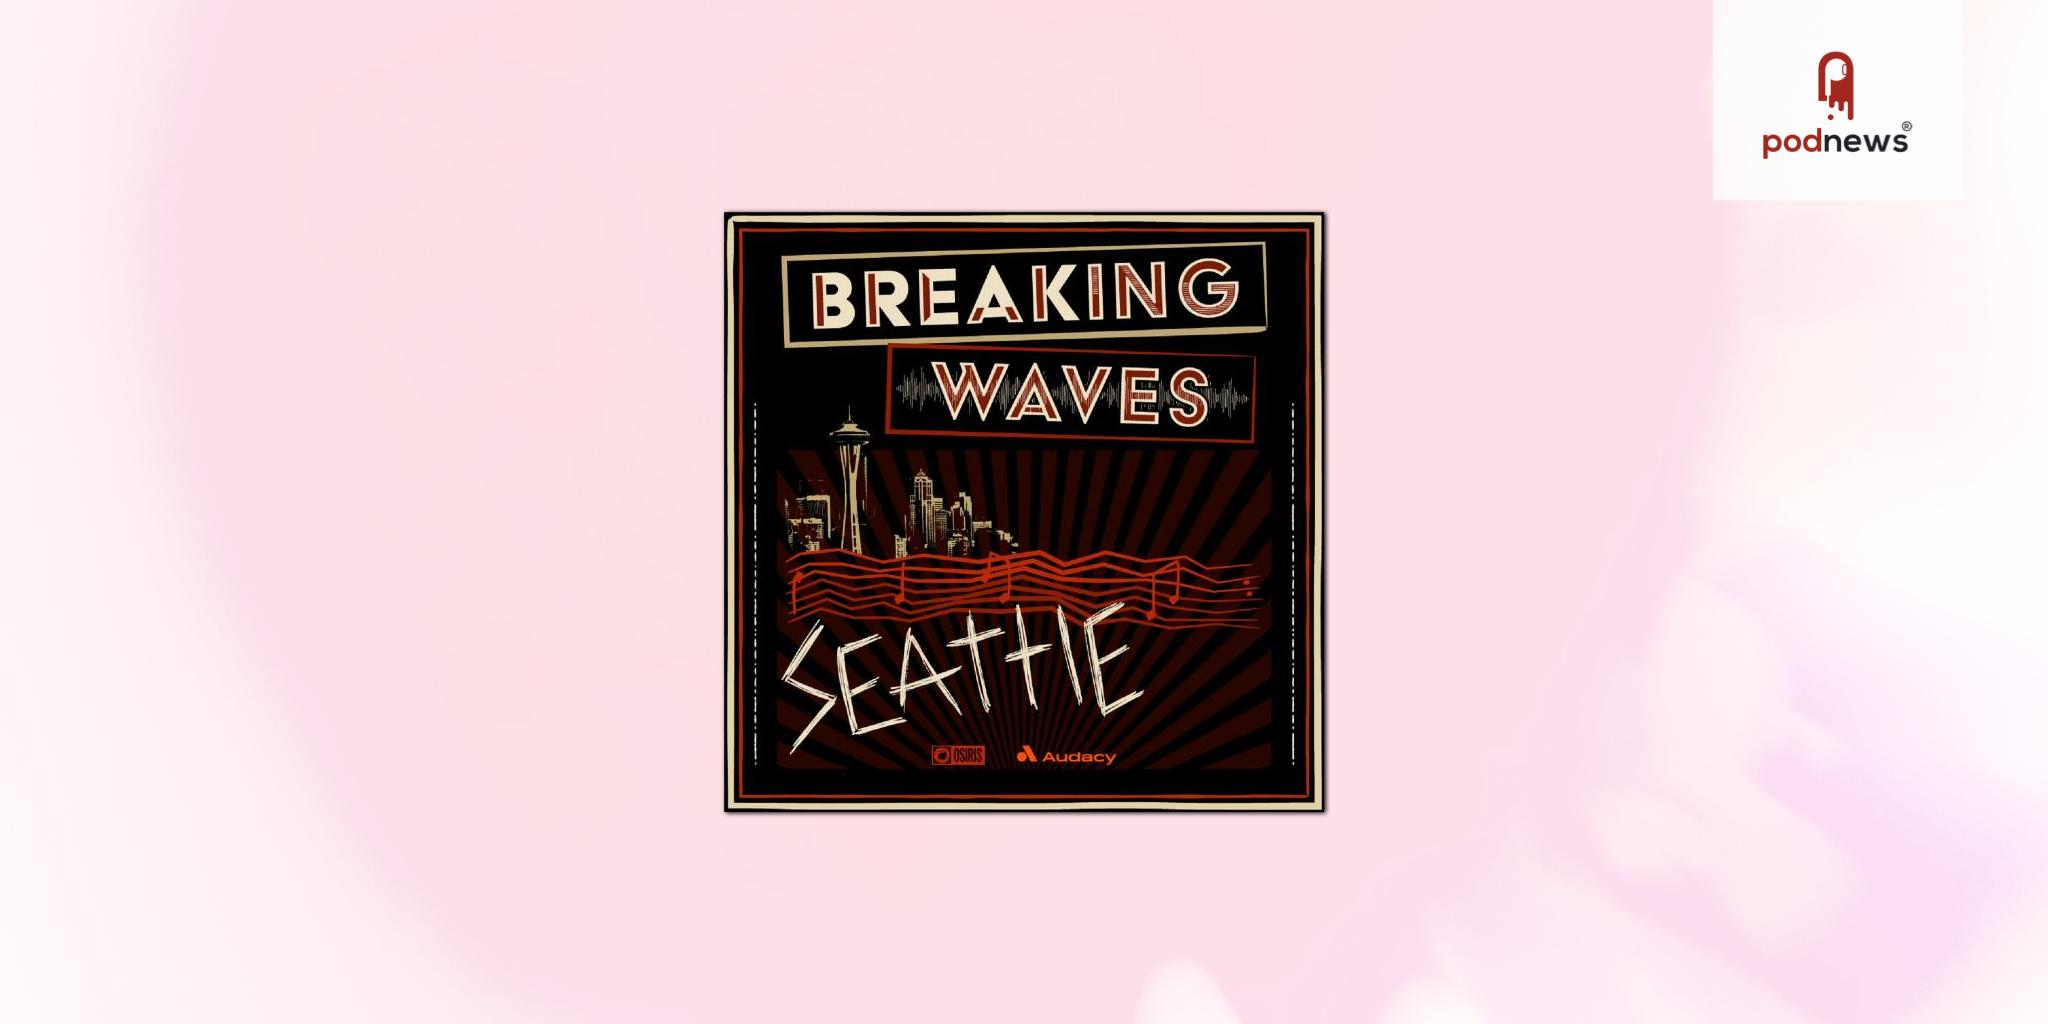 Audacy and Osiris Media launches Breaking Waves, a new podcast series examining popular music movements